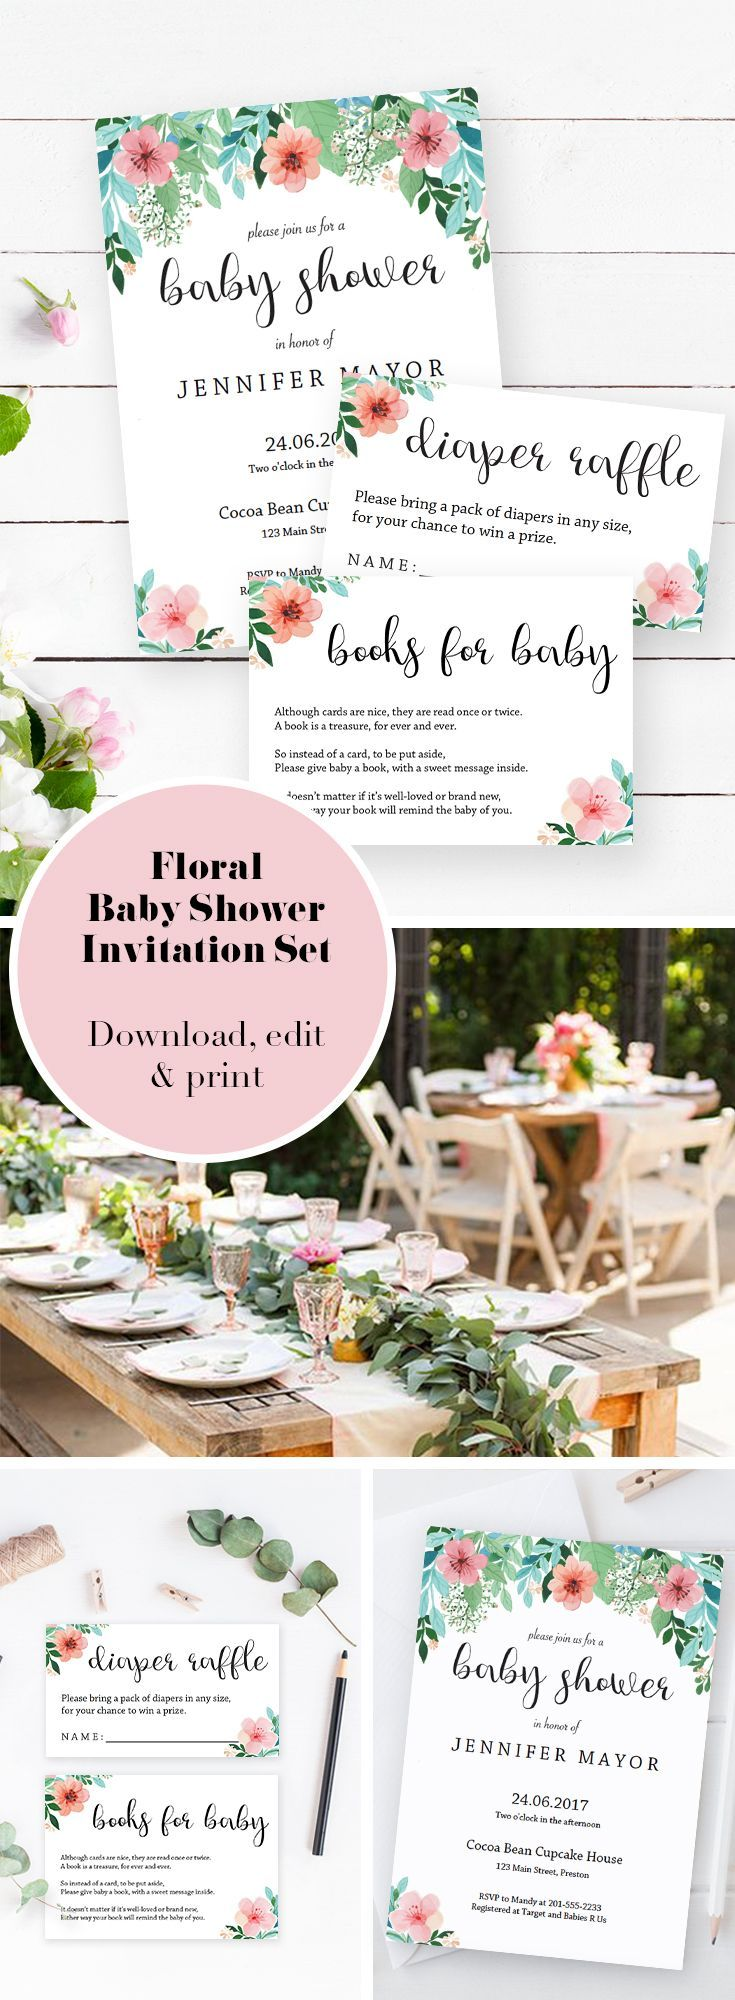 Floral Baby Shower Invitation Set. Baby Shower ideas and templates by LittleSizzle. Make the perfect announcement of a baby shower with this floral baby shower invitation set. Included in the set are the Invitation, a Diaper Raffle ticket and a Book request card. Personalize the items with your own words. Simply download, edit and print!